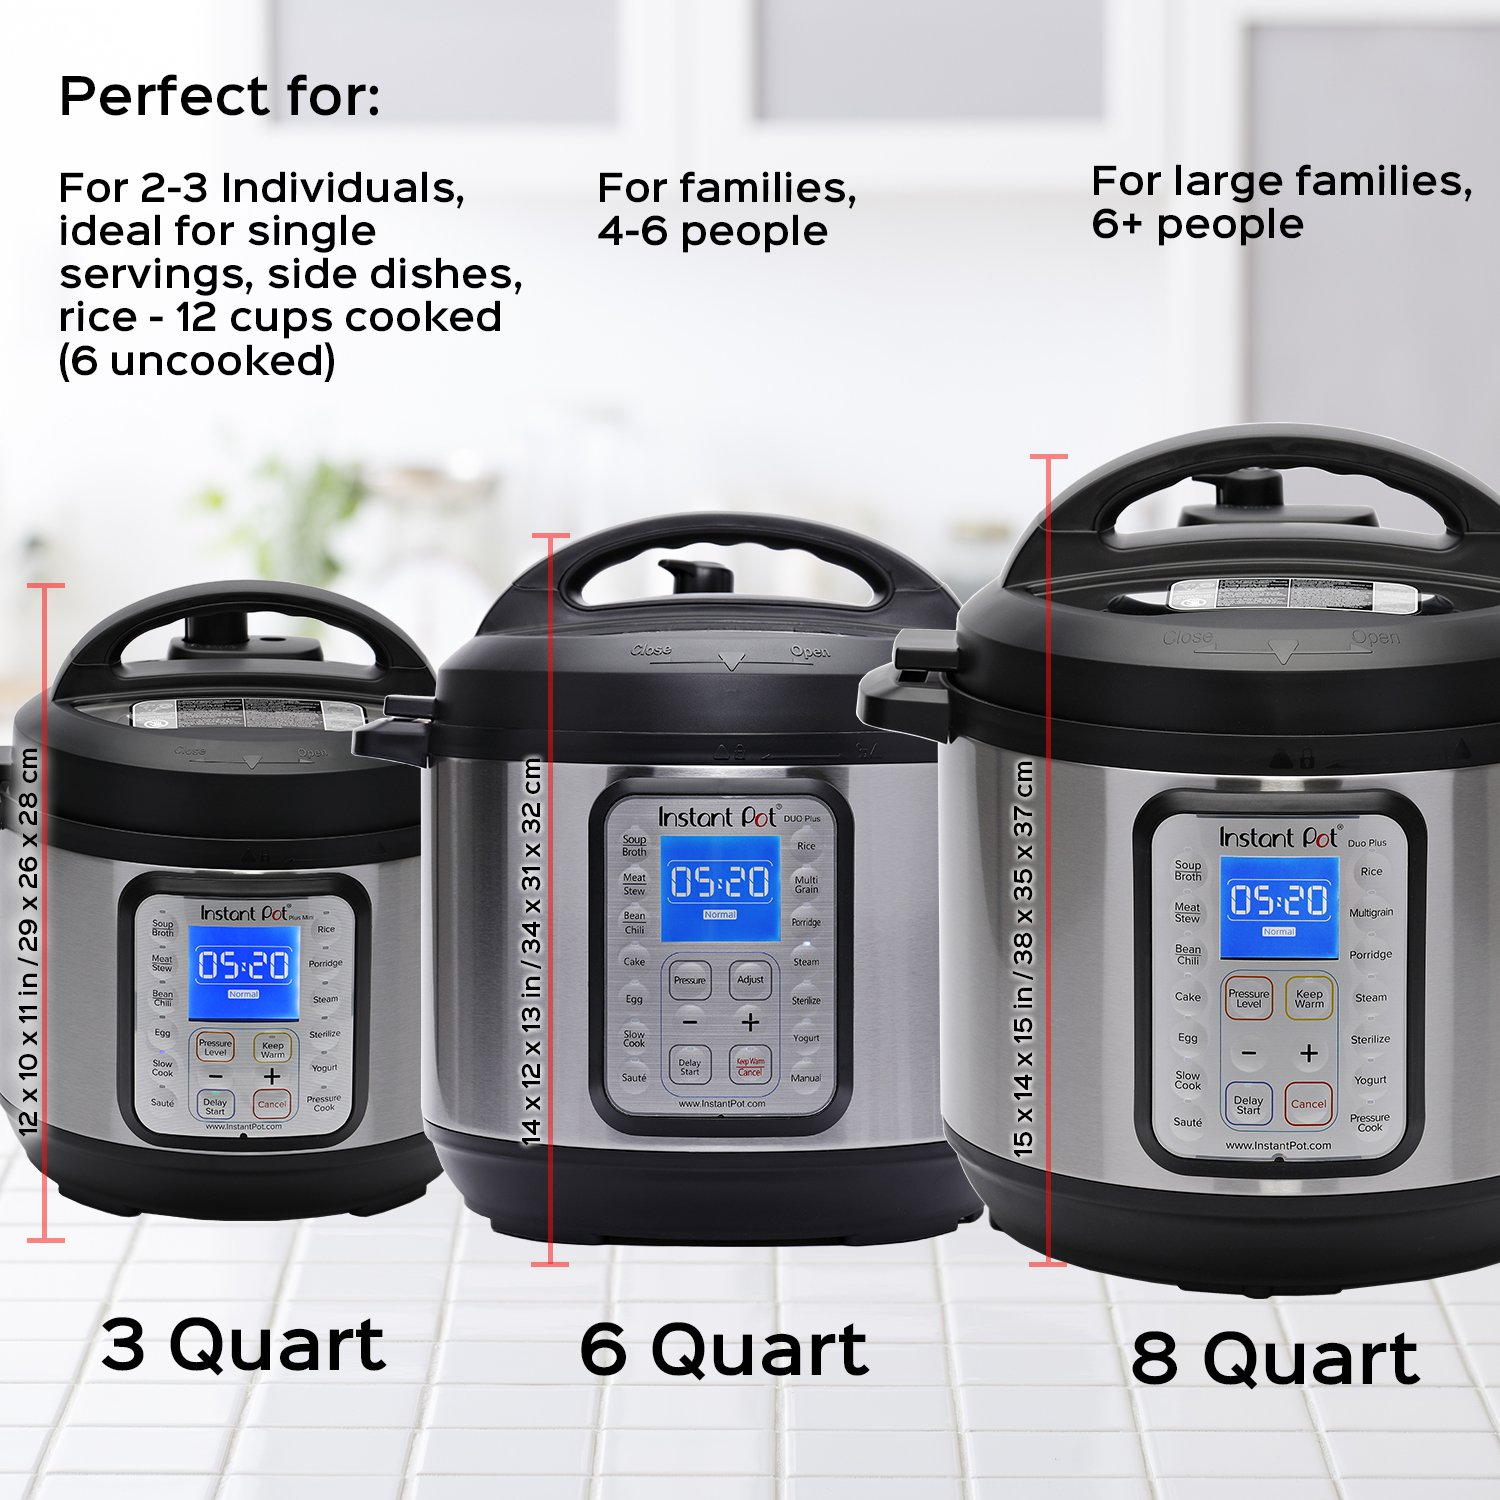 Instant Pot DUO Plus 8 Qt 9-in-1 Multi- Use Programmable Pressure Cooker, Slow Cooker, Rice Cooker, Yogurt Maker, Egg Cooker, Sauté, Steamer, Warmer, and Sterilizer by Instant Pot (Image #6)